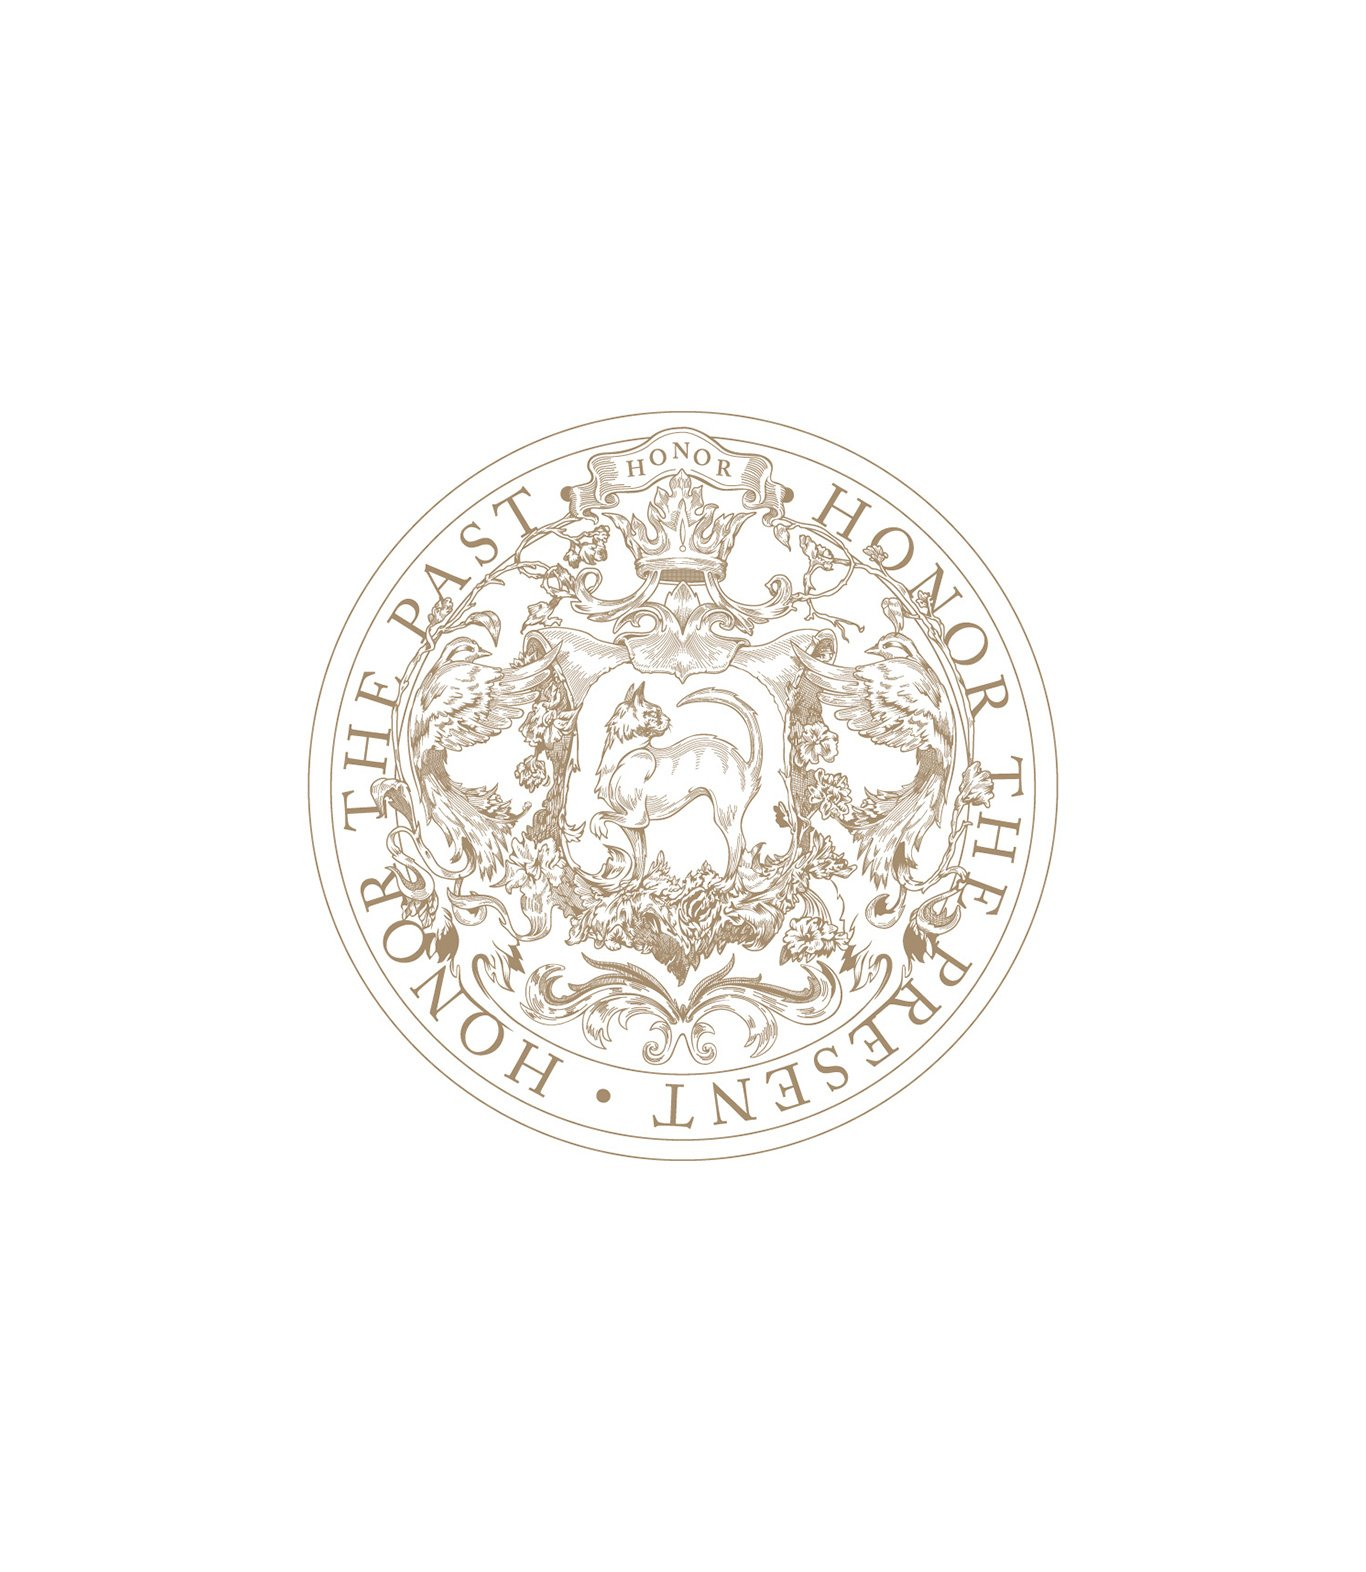 Honor Brand seal, reads: Honor the Past. Honor the Present. Design by RoAndCo Studio